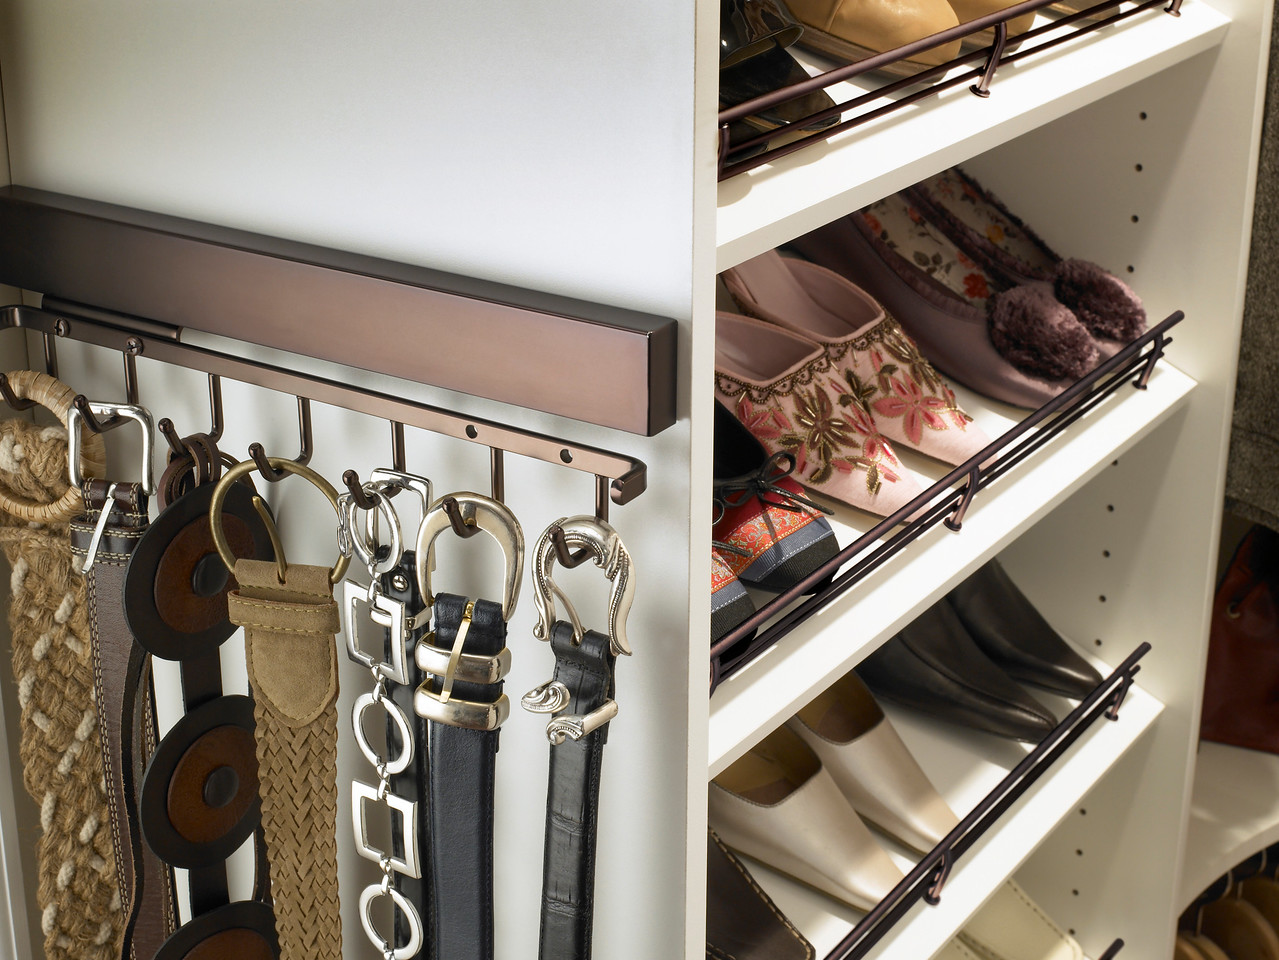 ClosetMaid MasterSuite Belt and Tie Rack and Shoe Shelves with Oil Rubbed Bronze hardware